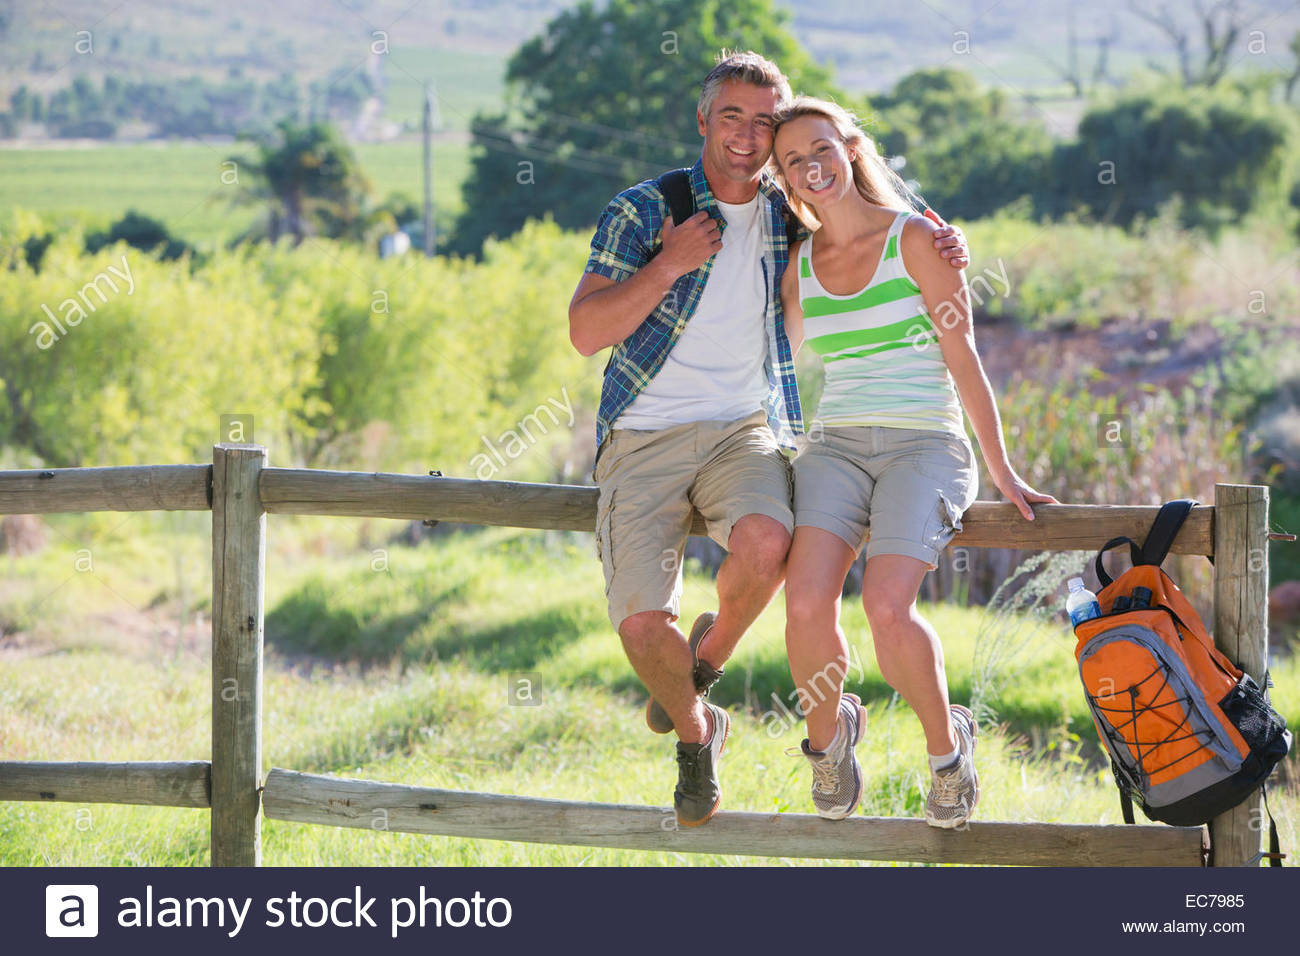 Couple resting on a fence in a rural setting - Stock Image